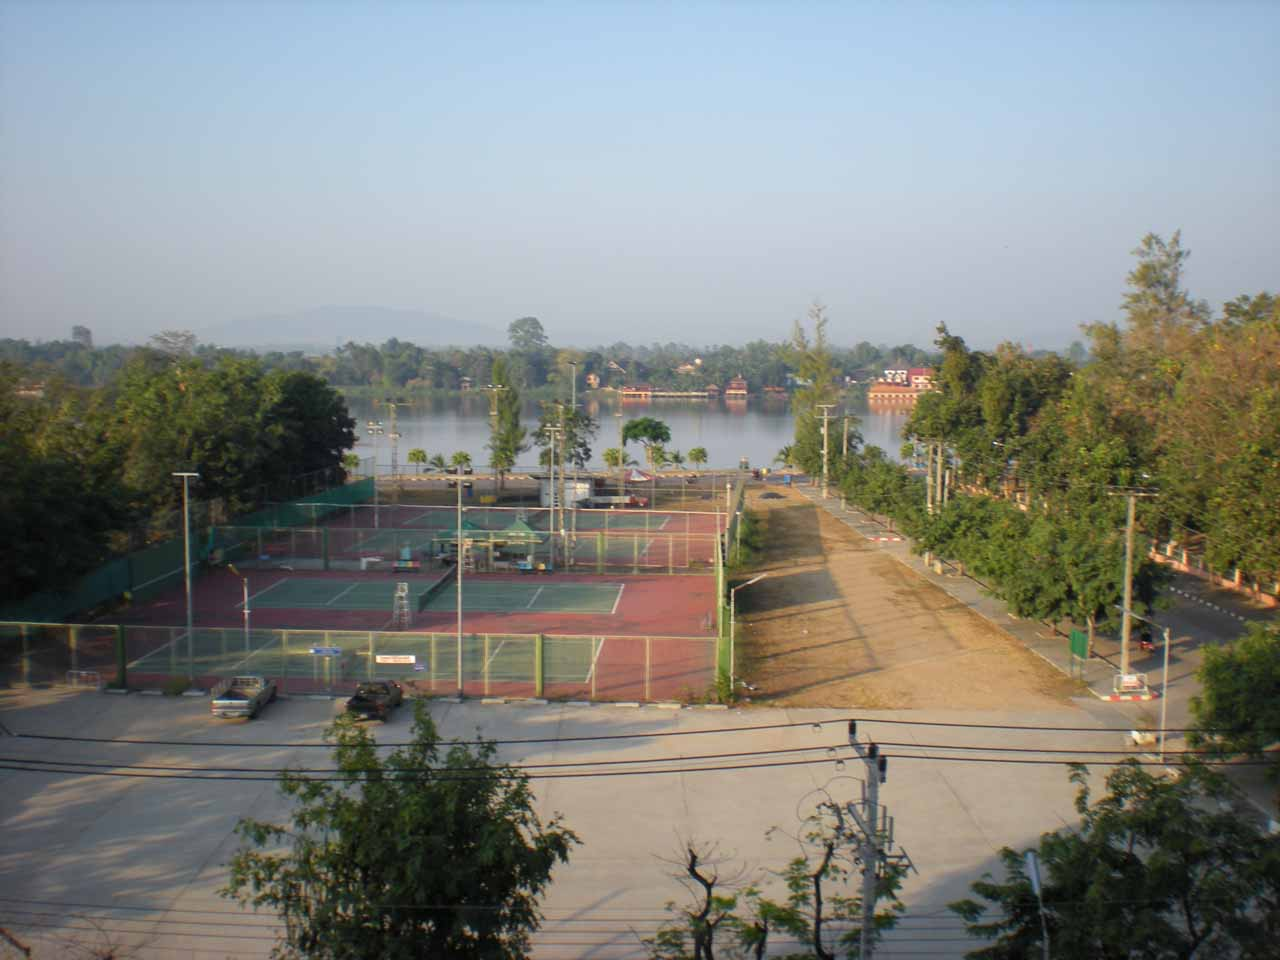 Looking over the tennis courts and towards the river from our hotel room